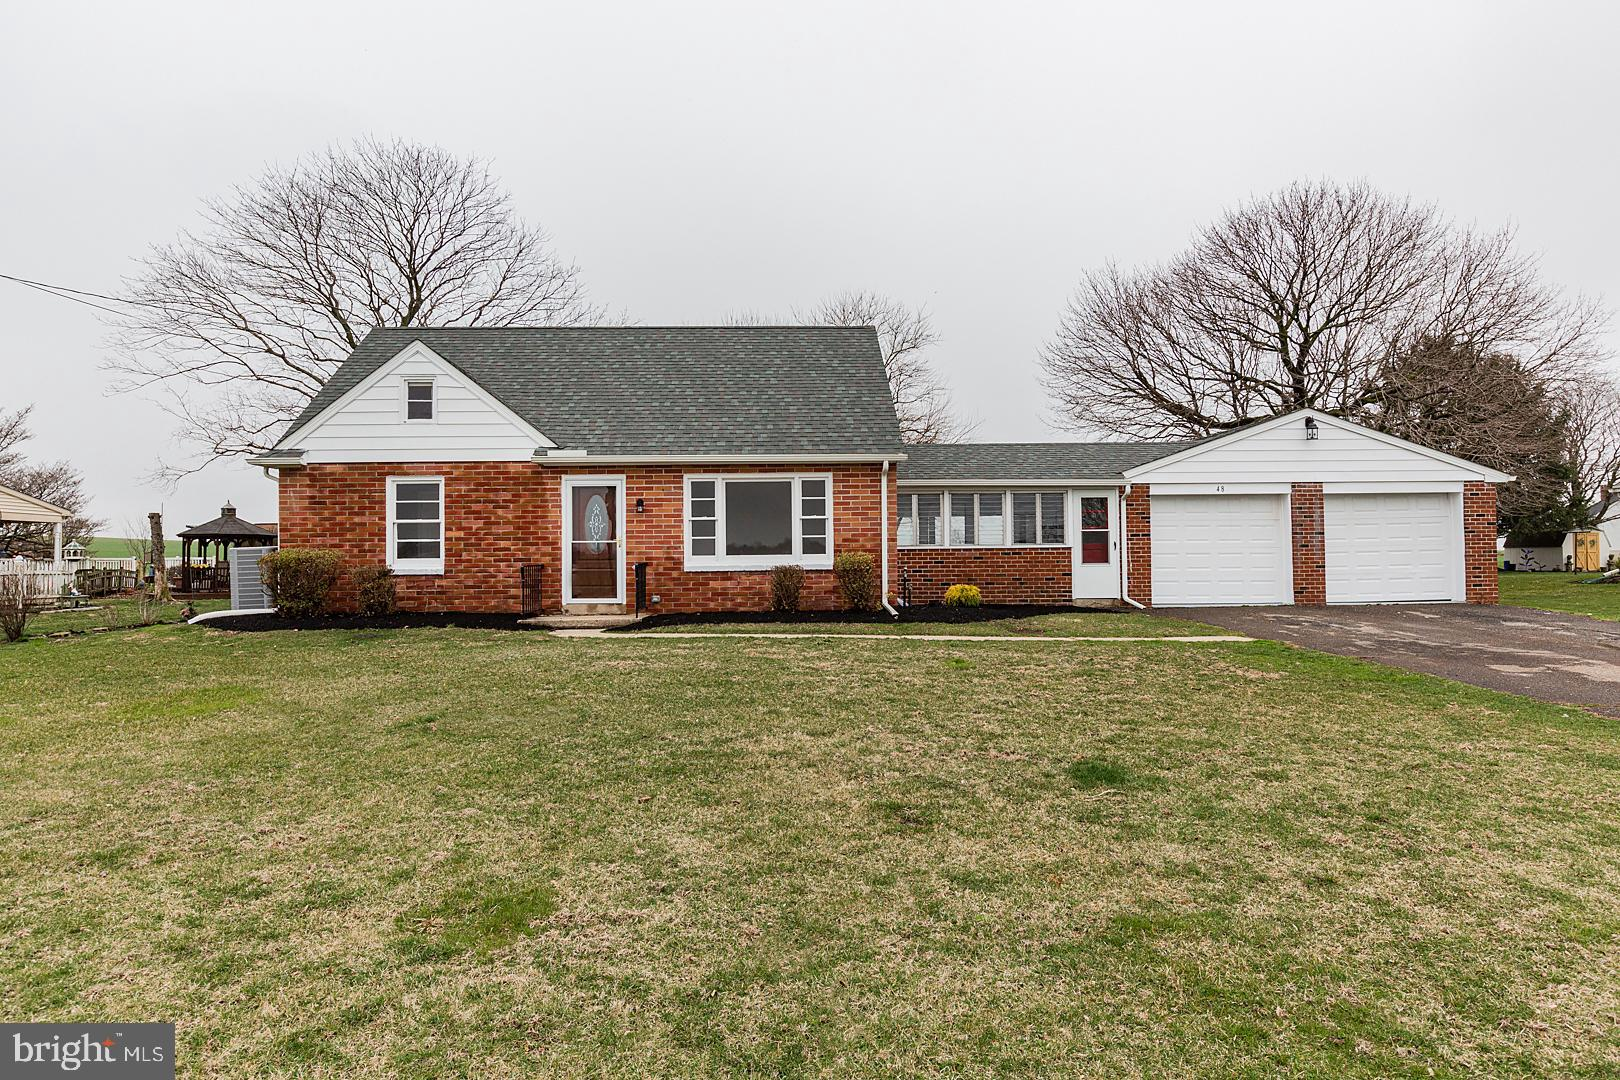 48 CHERRY HILL ROAD, RONKS, PA 17572